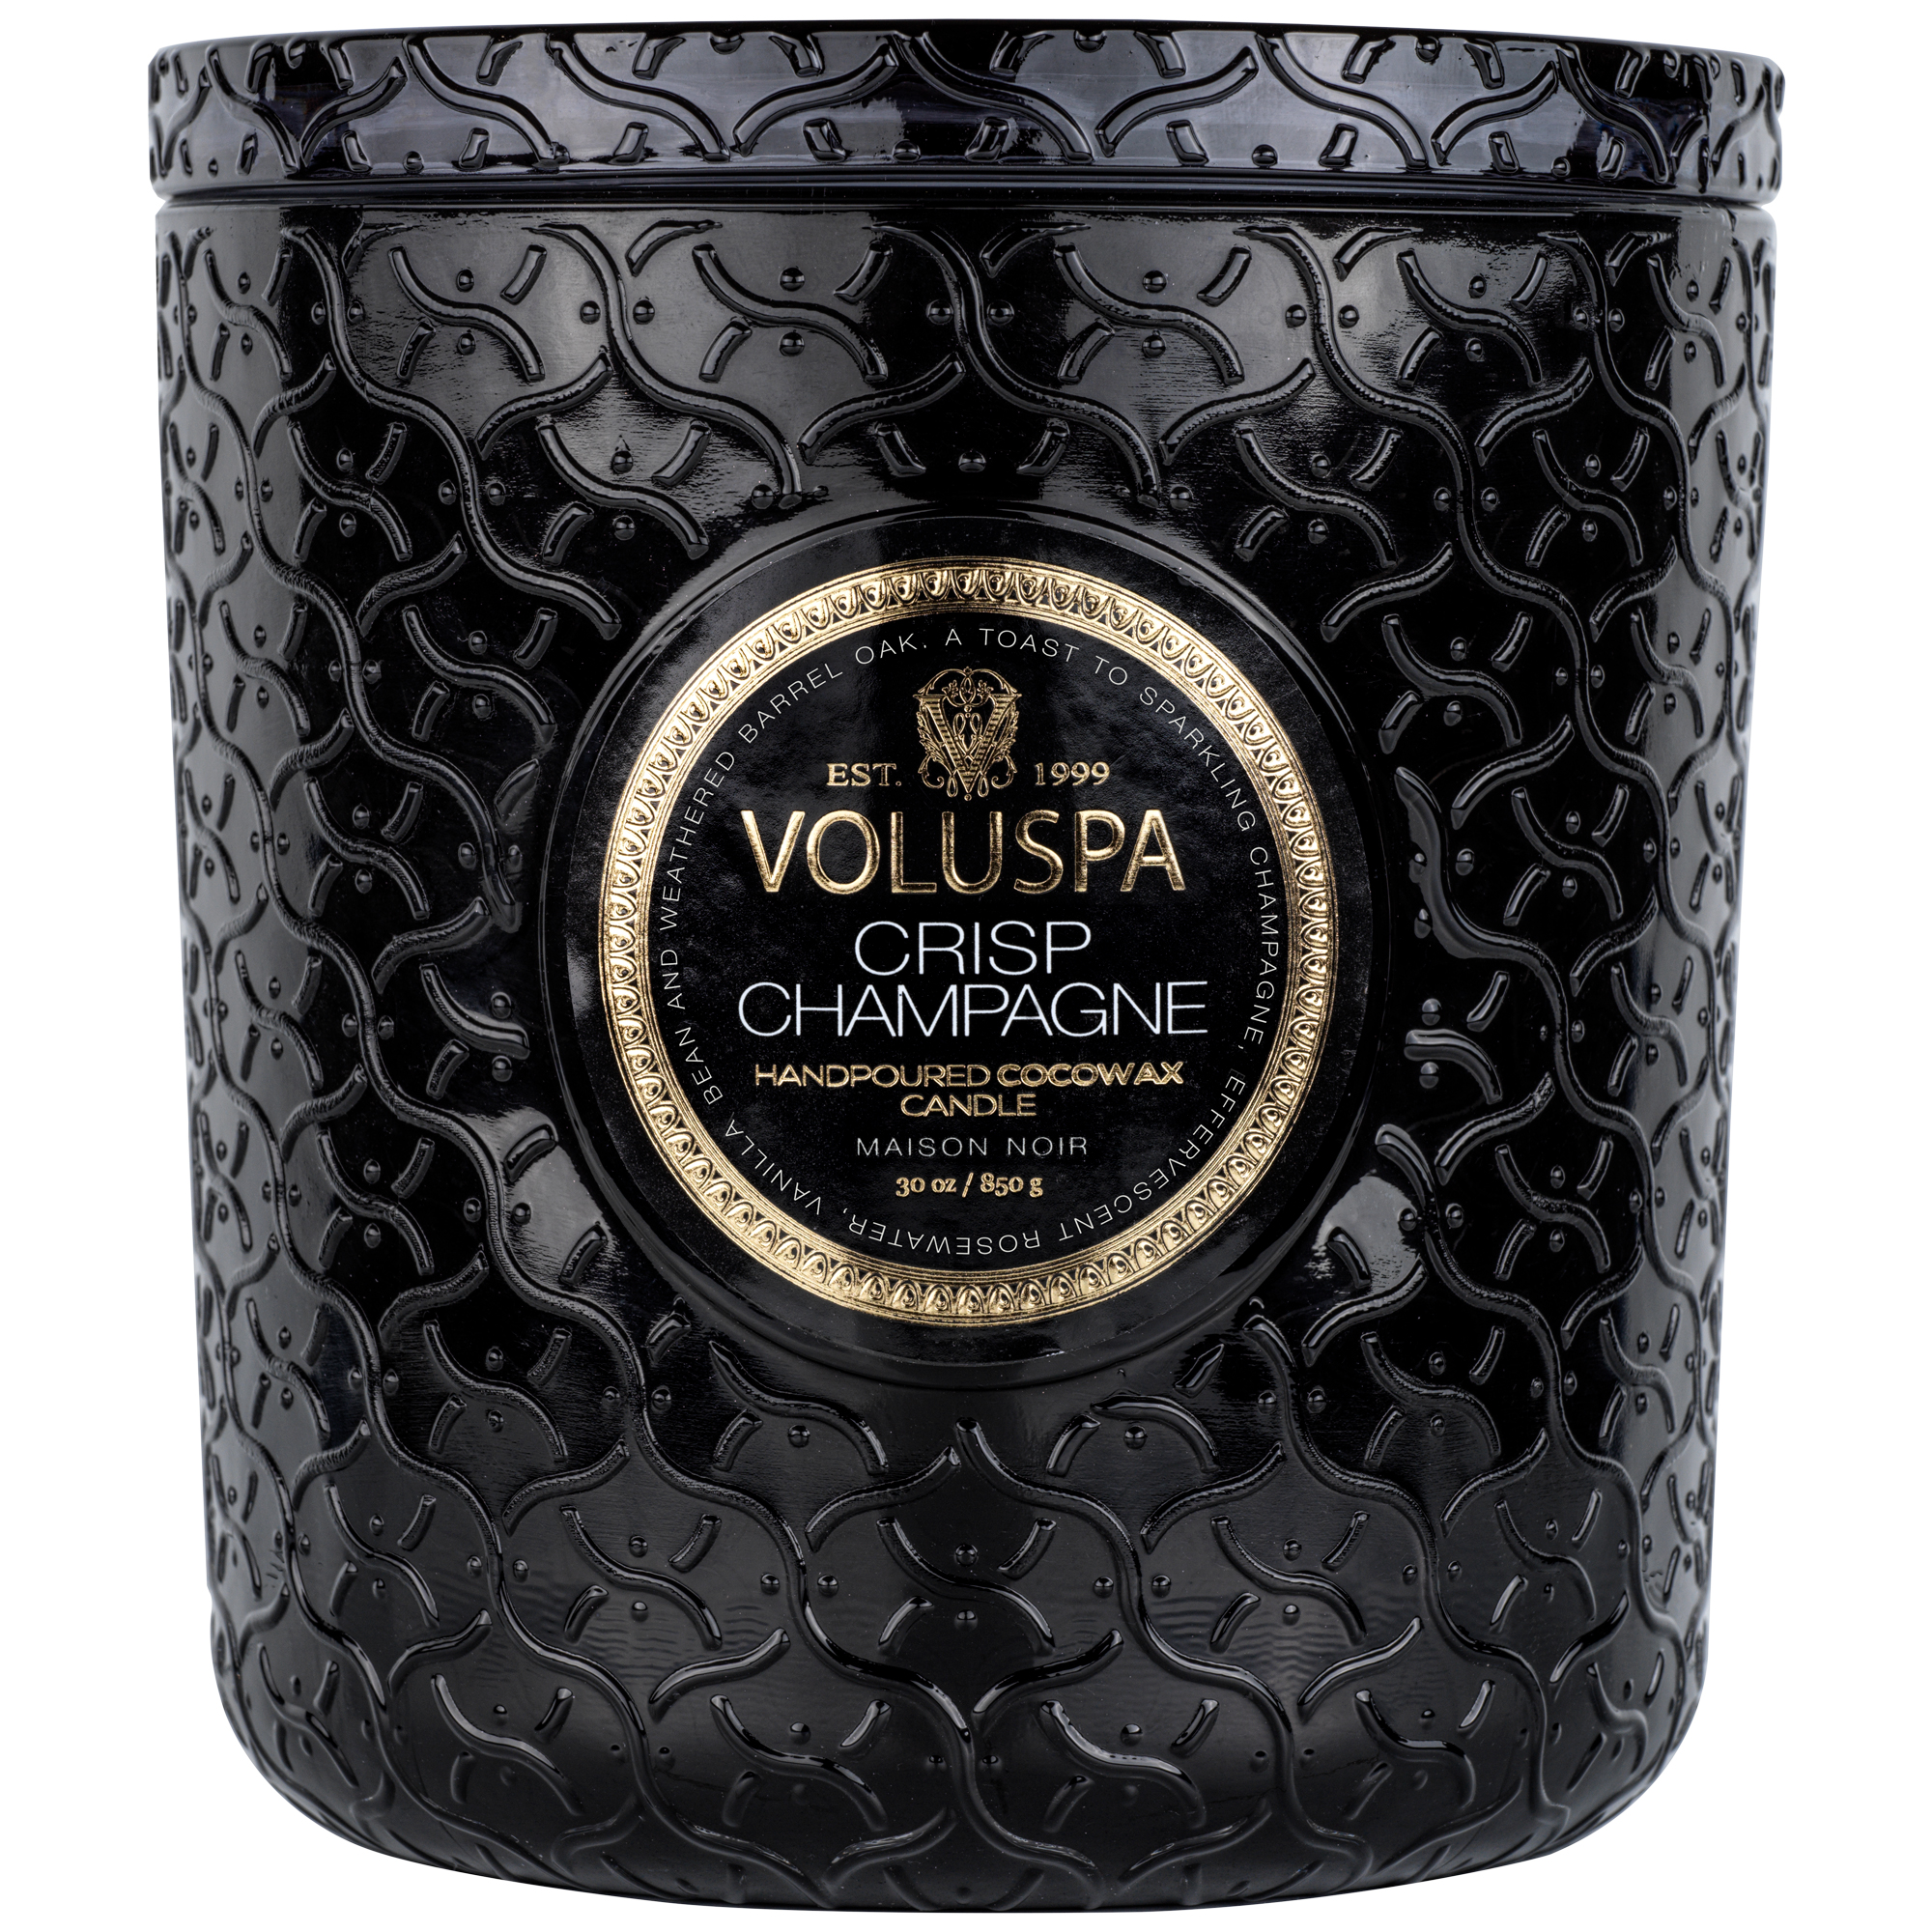 CRISP CHAMPAGNE LUXE CANDLE